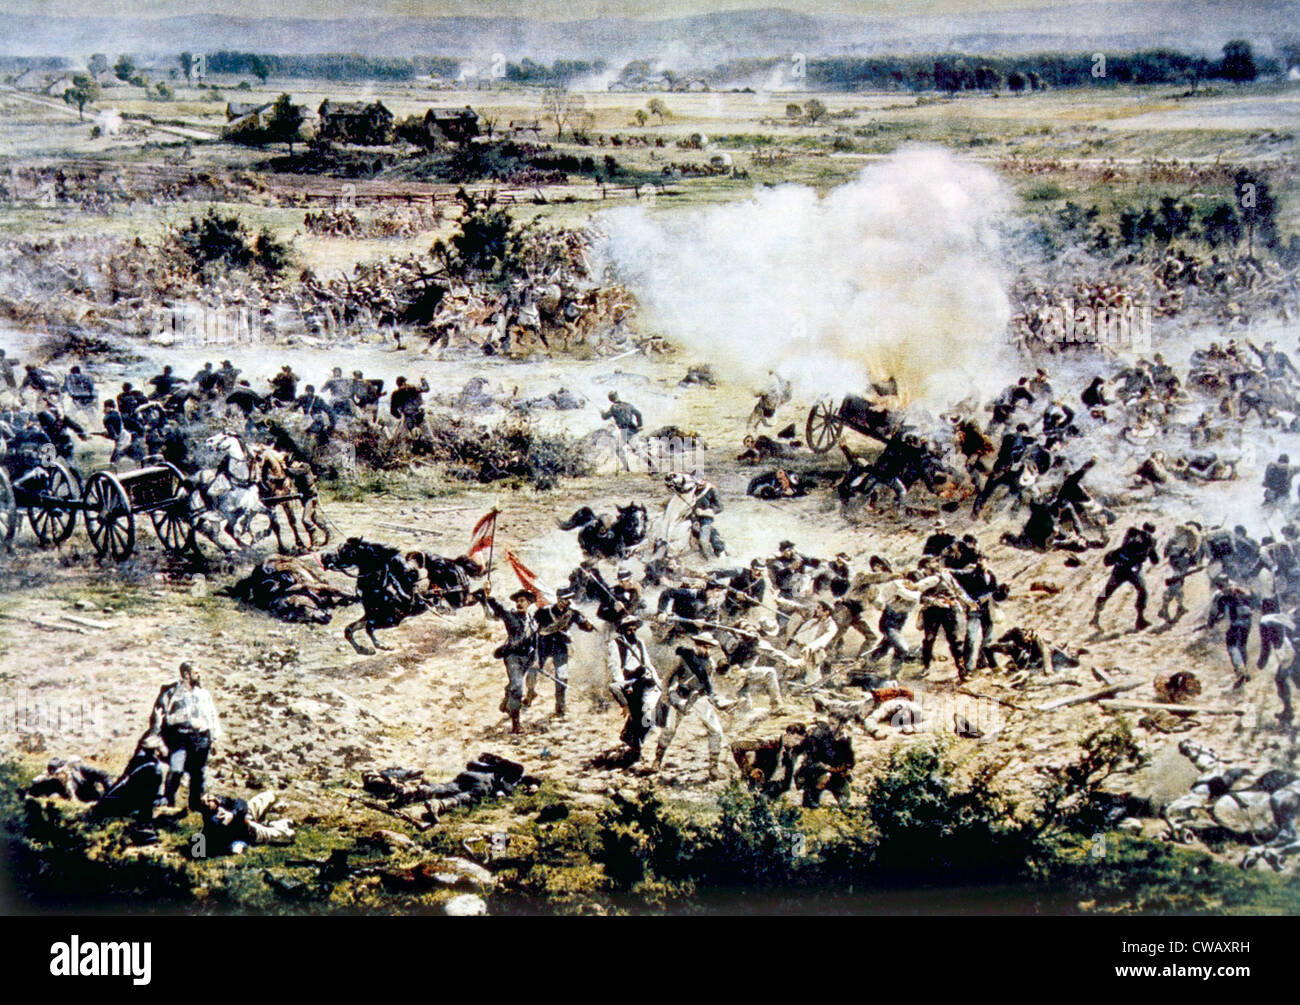 battle of gettysburg Facts about the civil war battle of gettysburg - who fought in the battle who was in command who won how many casualties were there how many died.